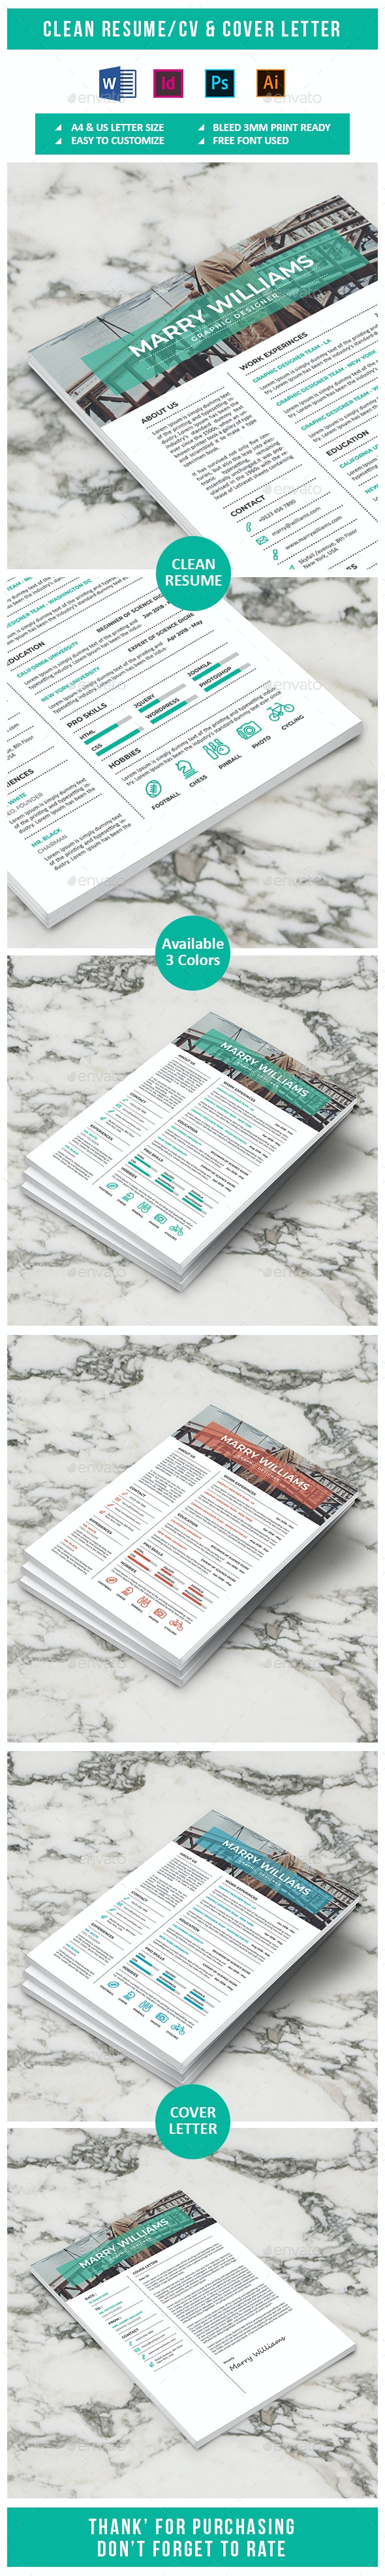 Clean Resume & Cover Letter Vol 5 - Resumes Stationery